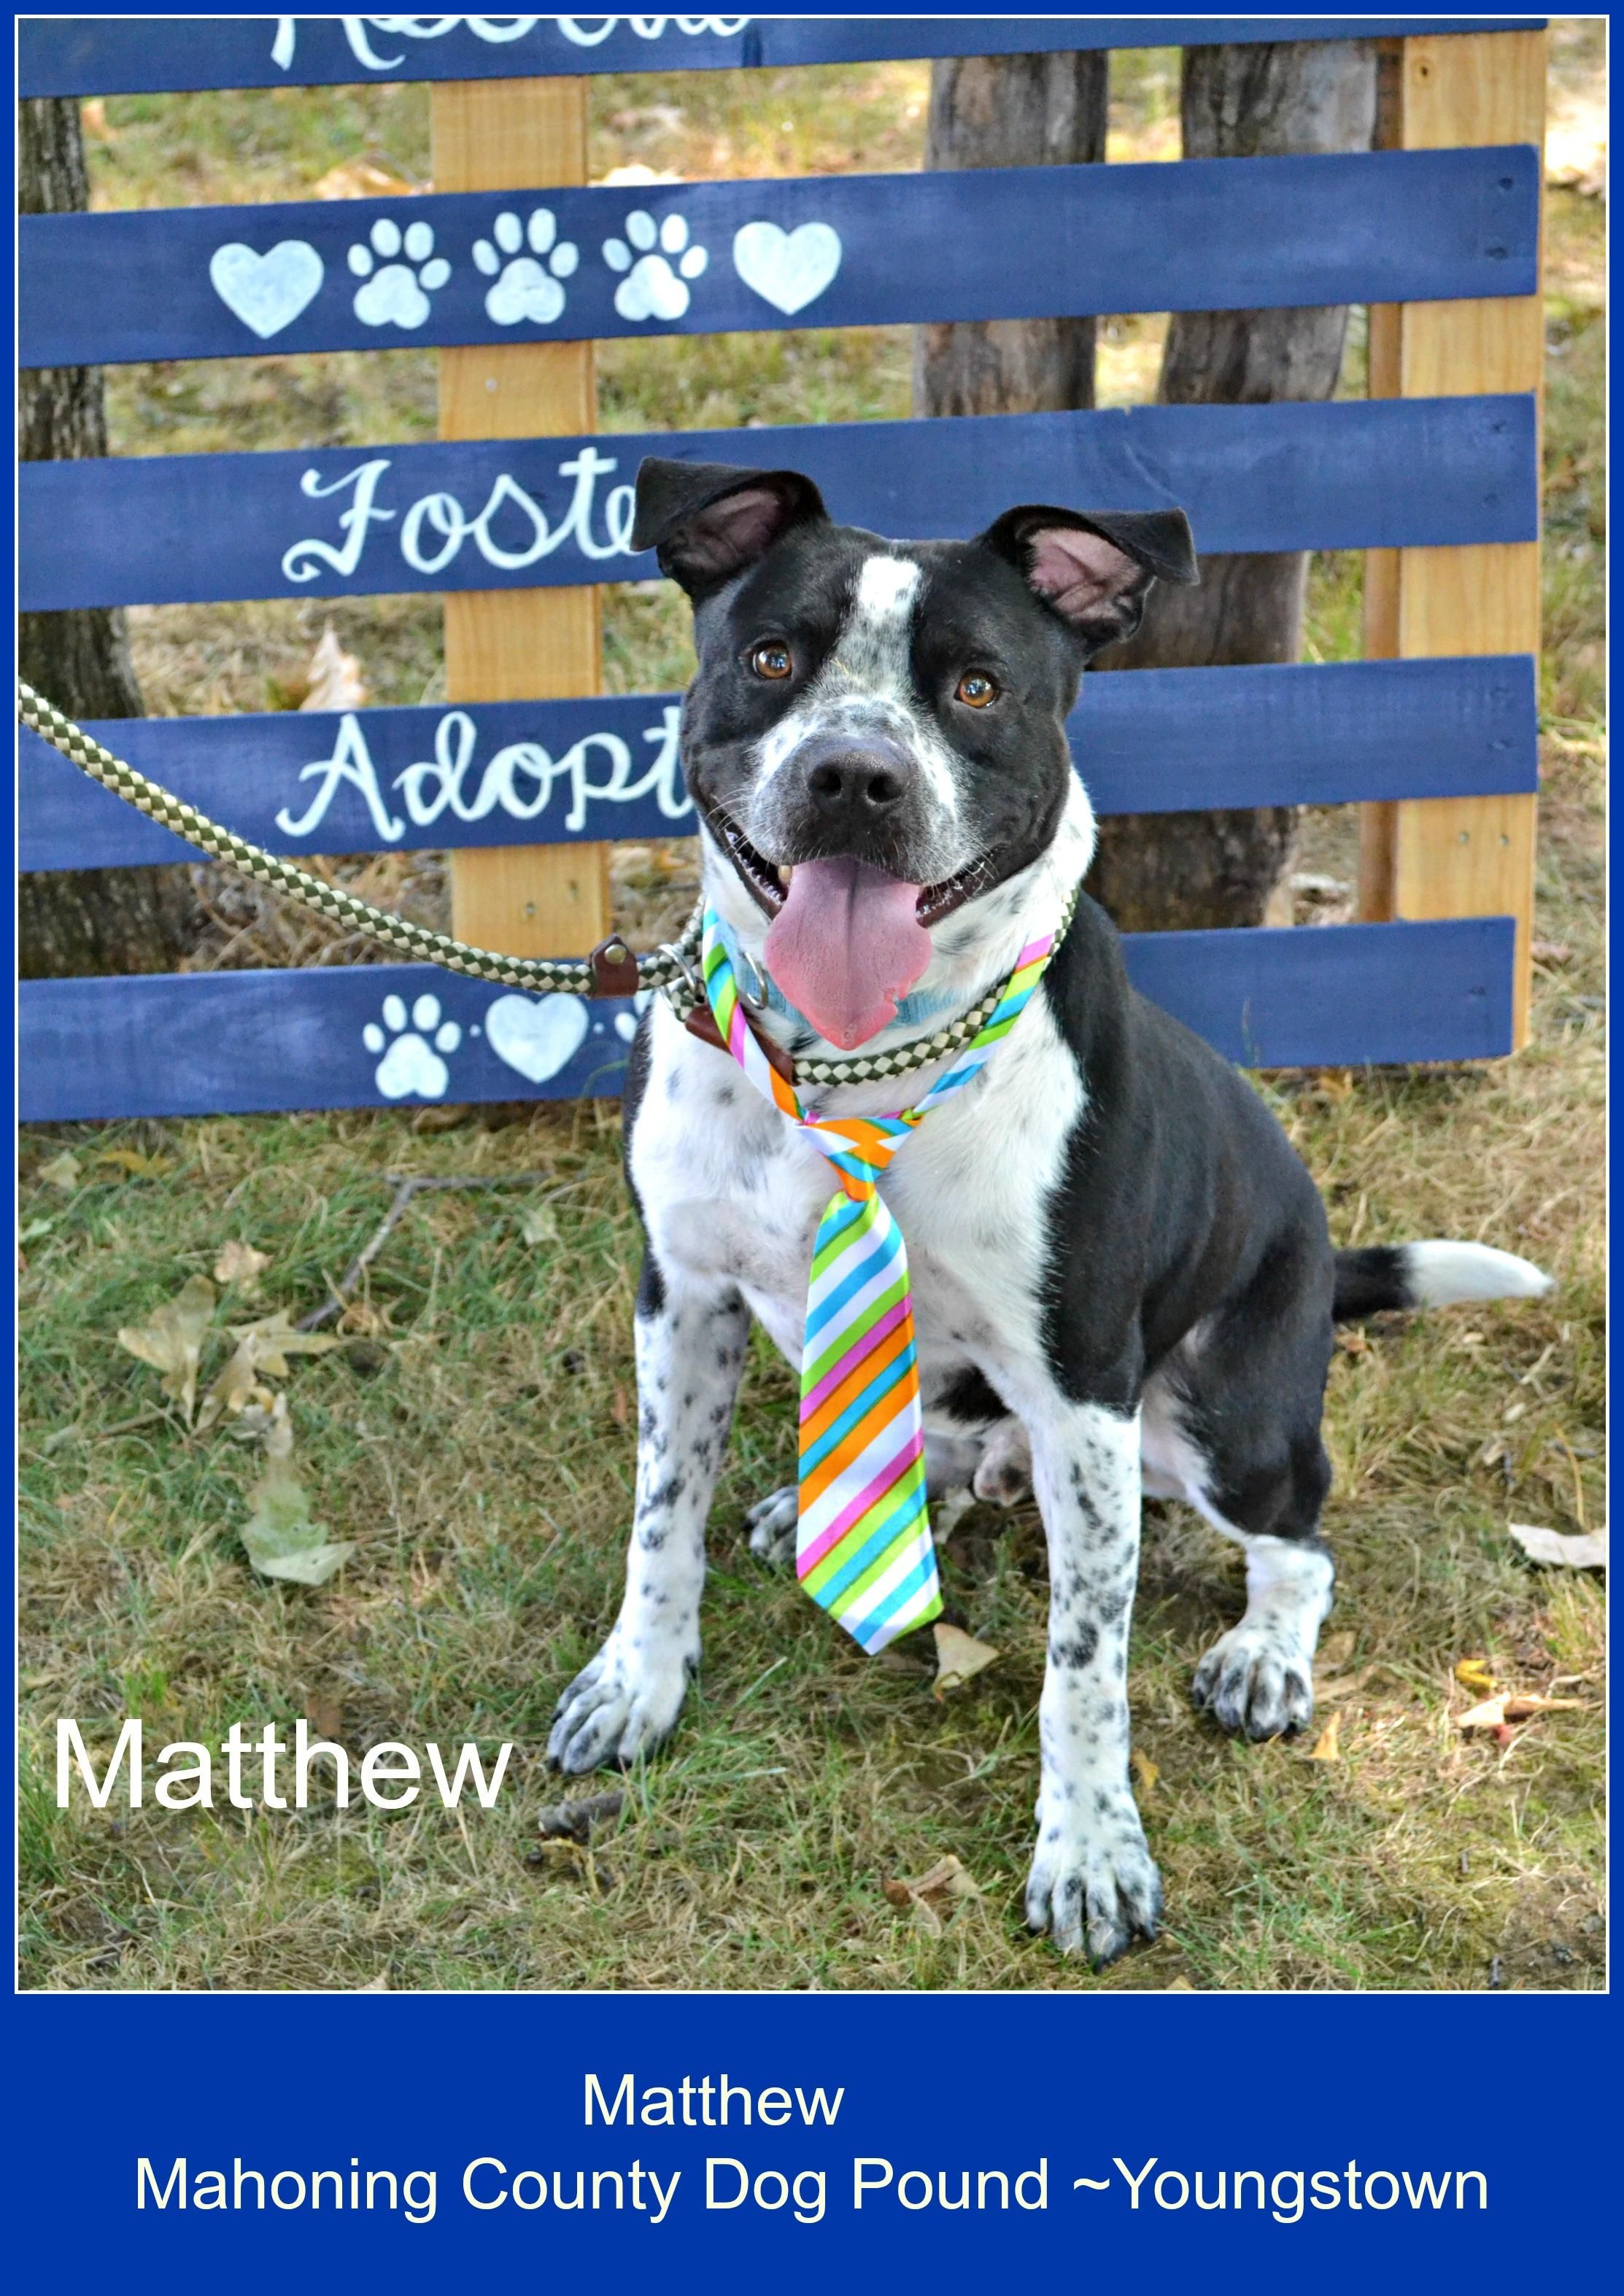 Matthew is an adoptable Terrier searching for a forever family near Youngstown, OH. Use Petfinder to find adoptable pets in your area.